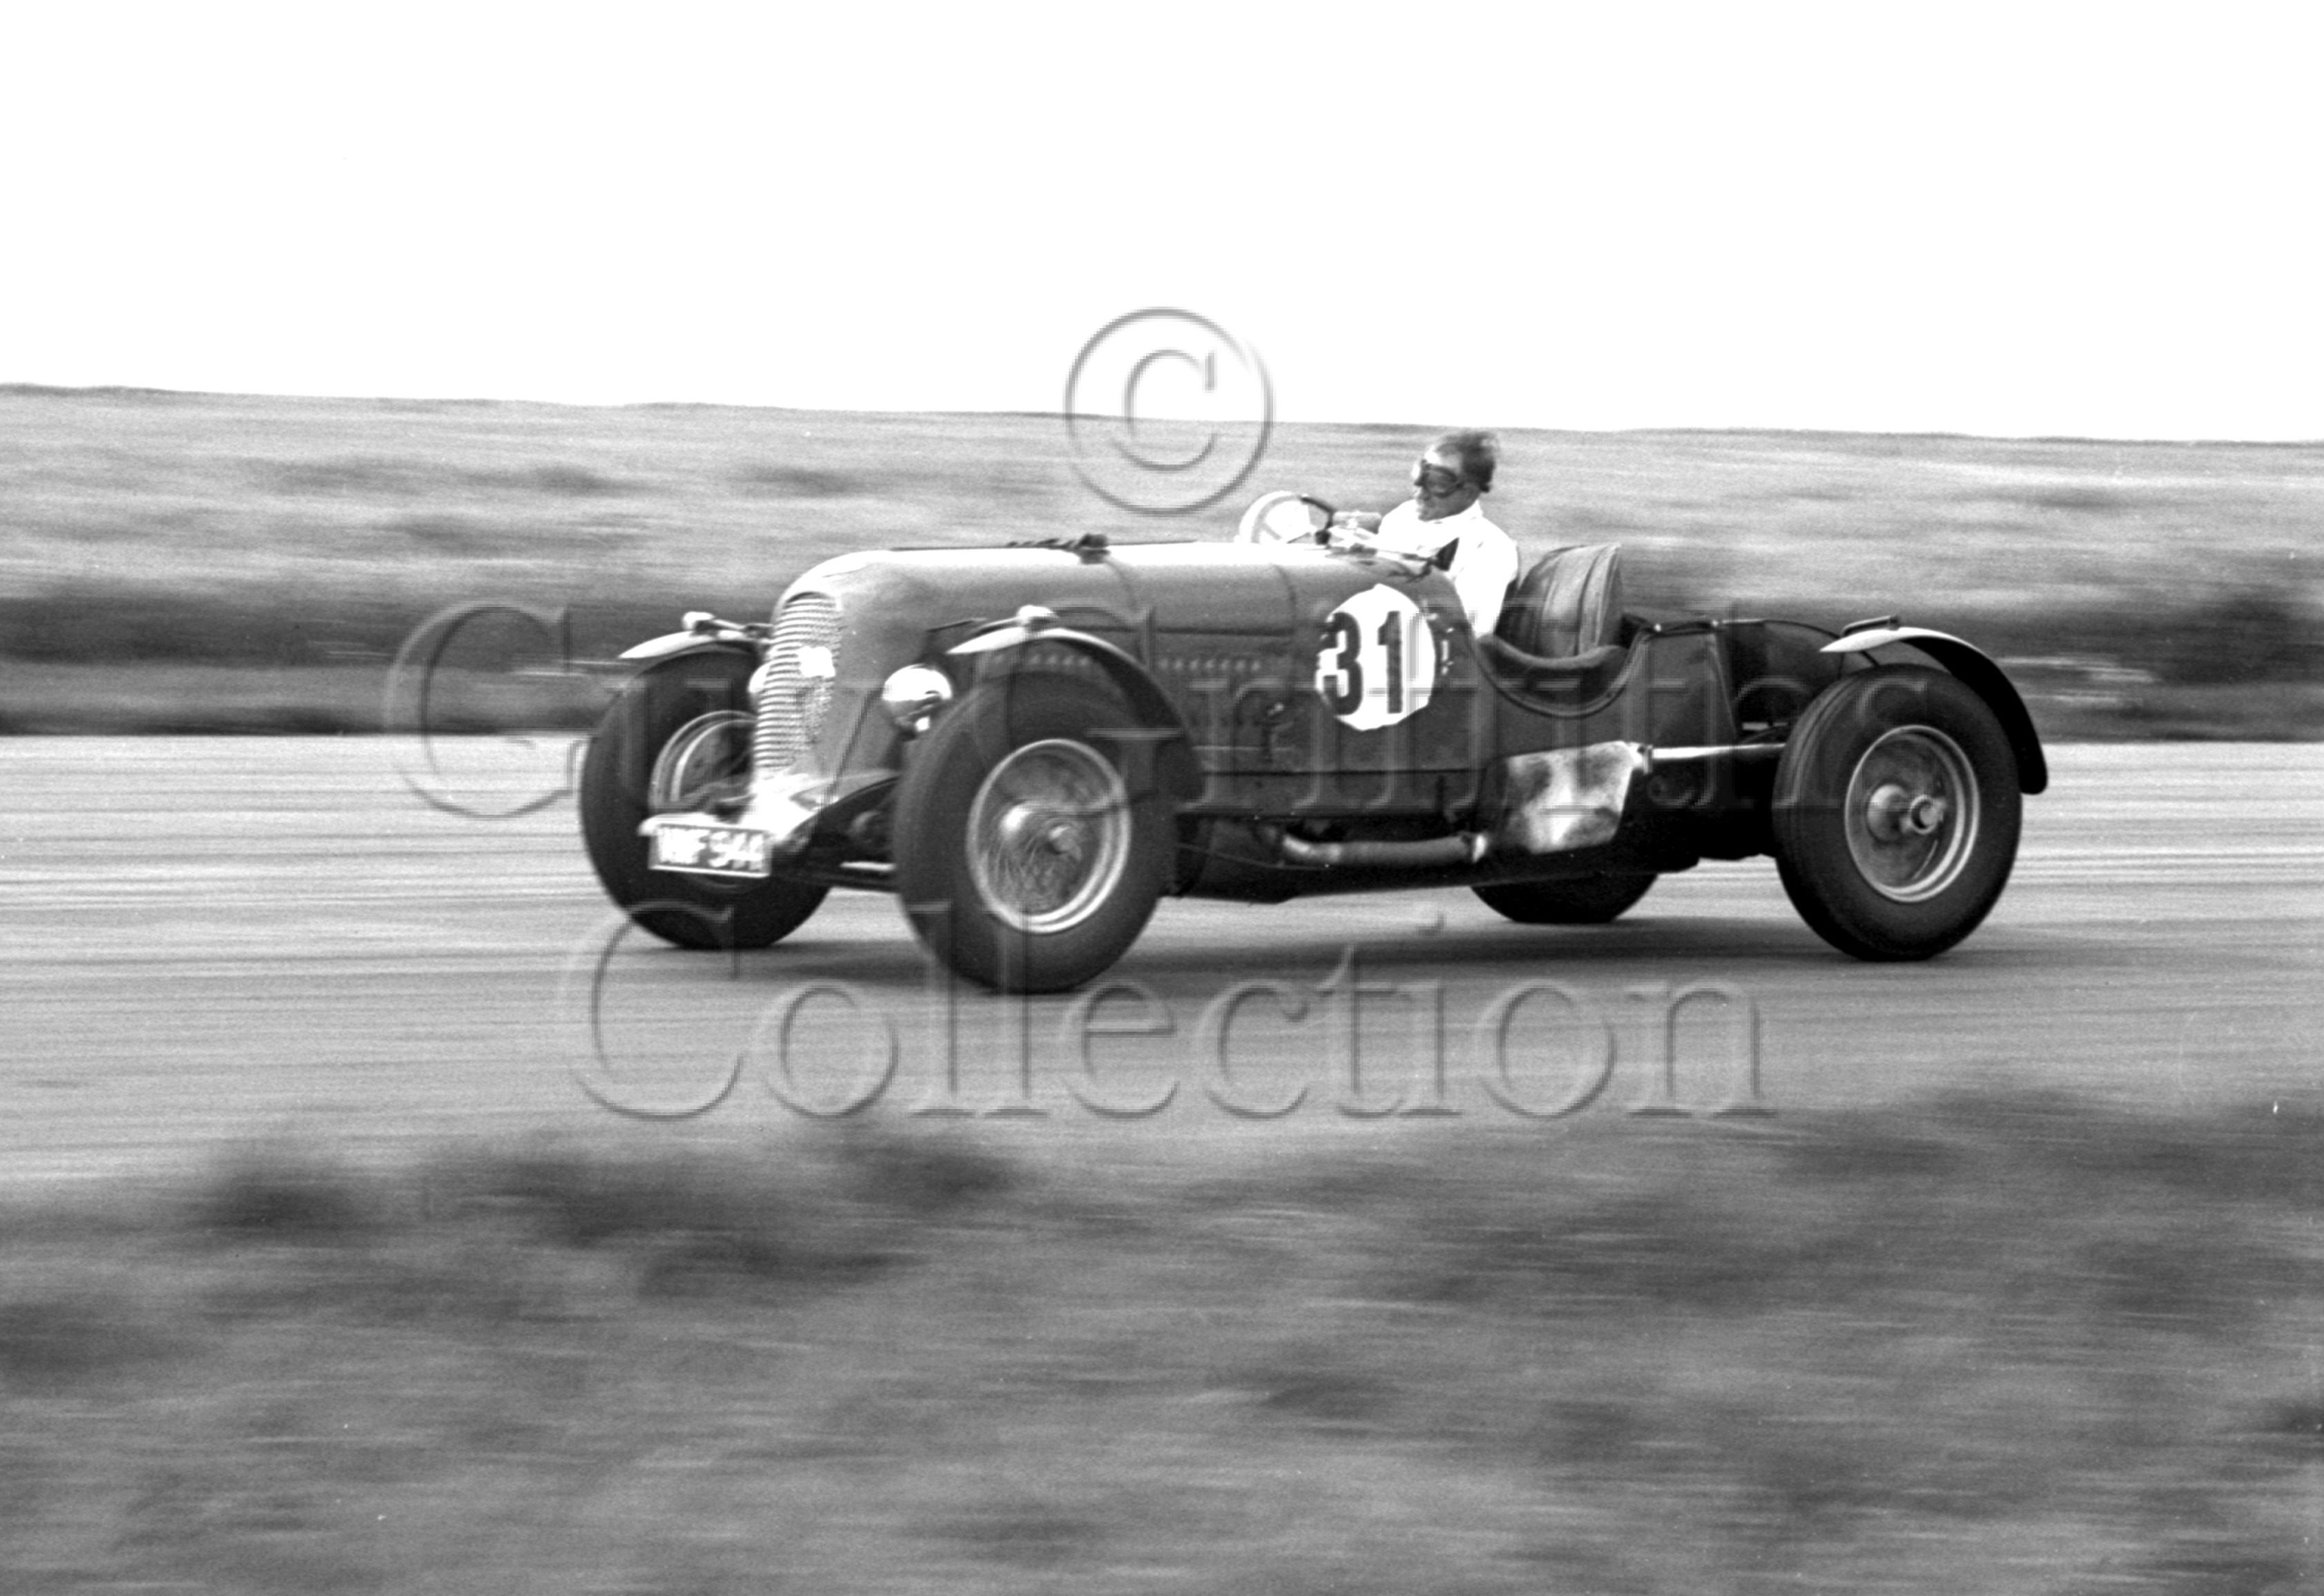 34-466–S-J-Lawrence–Bentley–Silverstone–29-07-1950.jpg - The Guy Griffiths Collection